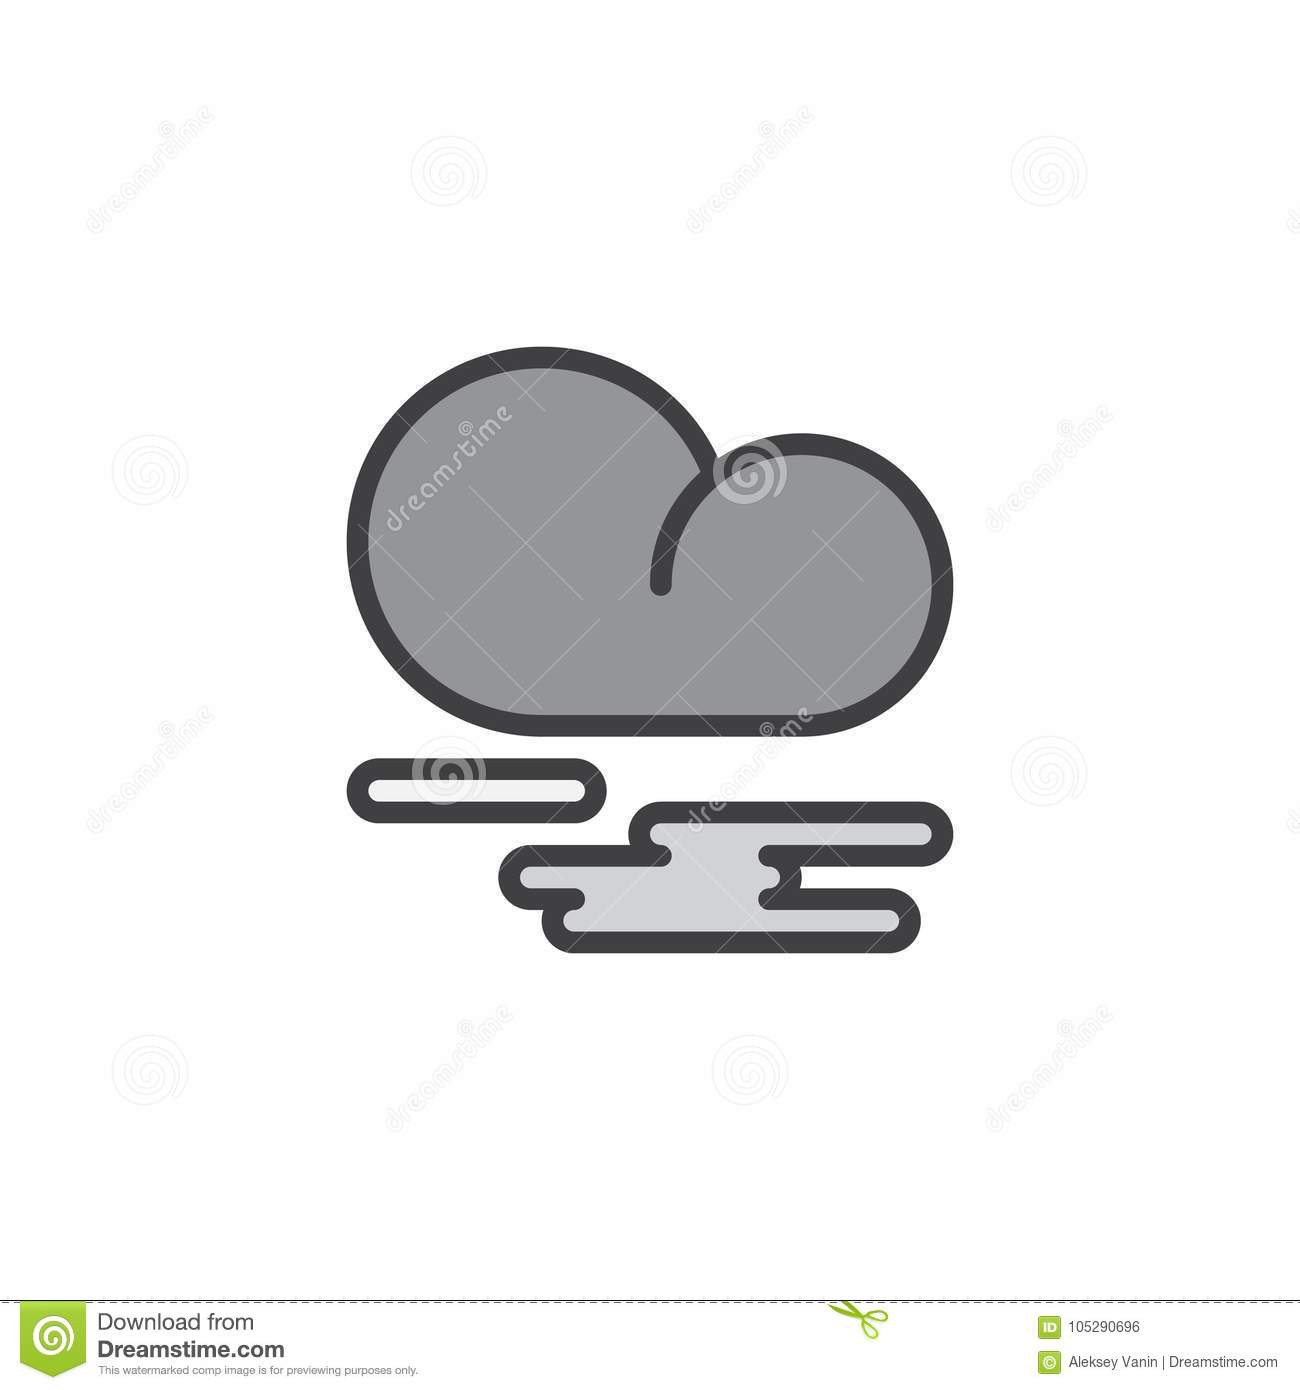 Mist Fog And Cloud Filled Outline Icon Stock Vector Illustration